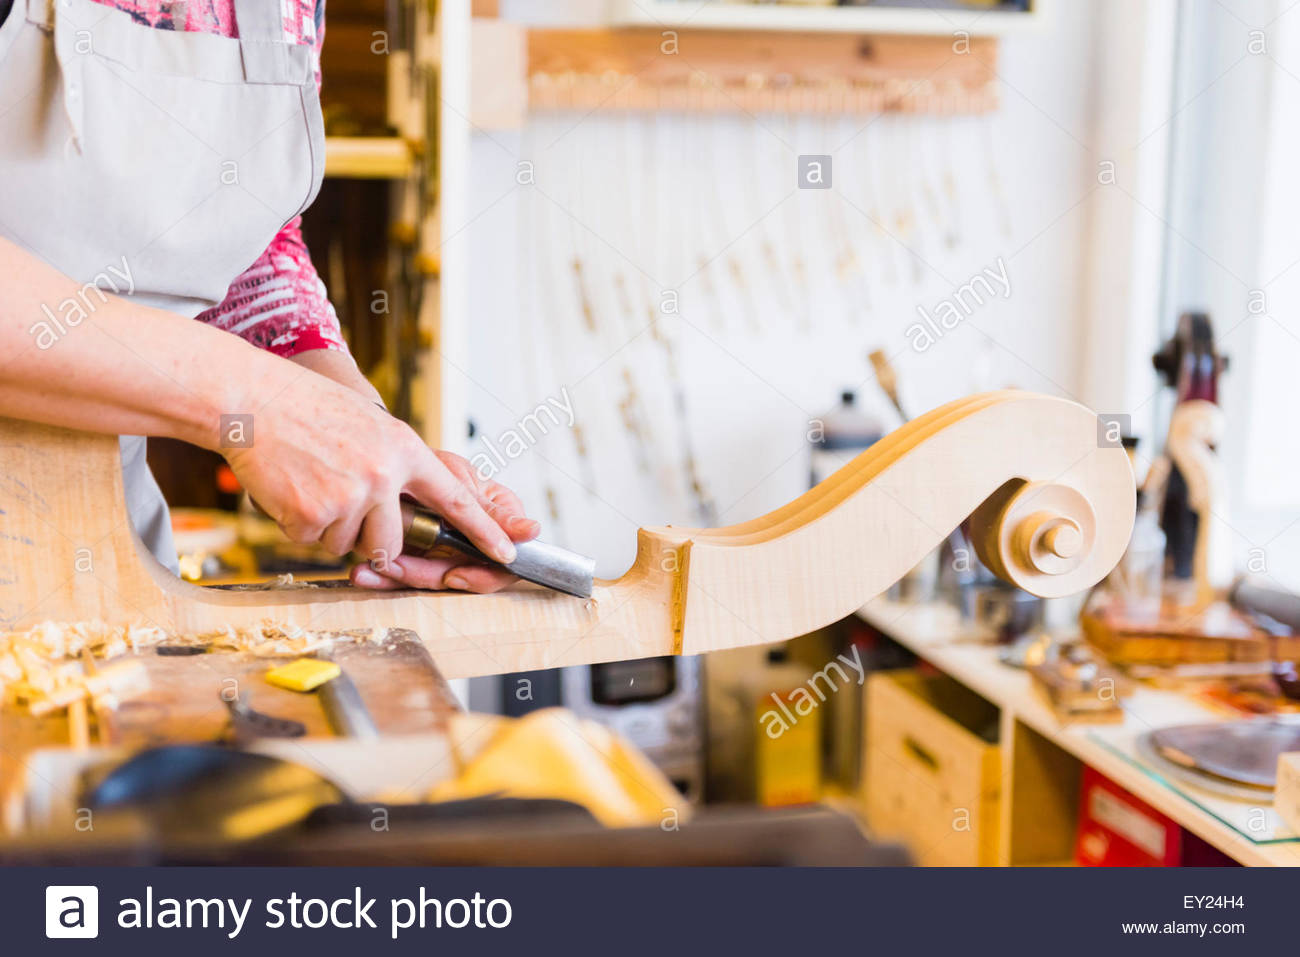 Violin maker making violins in production studio - Stock Image